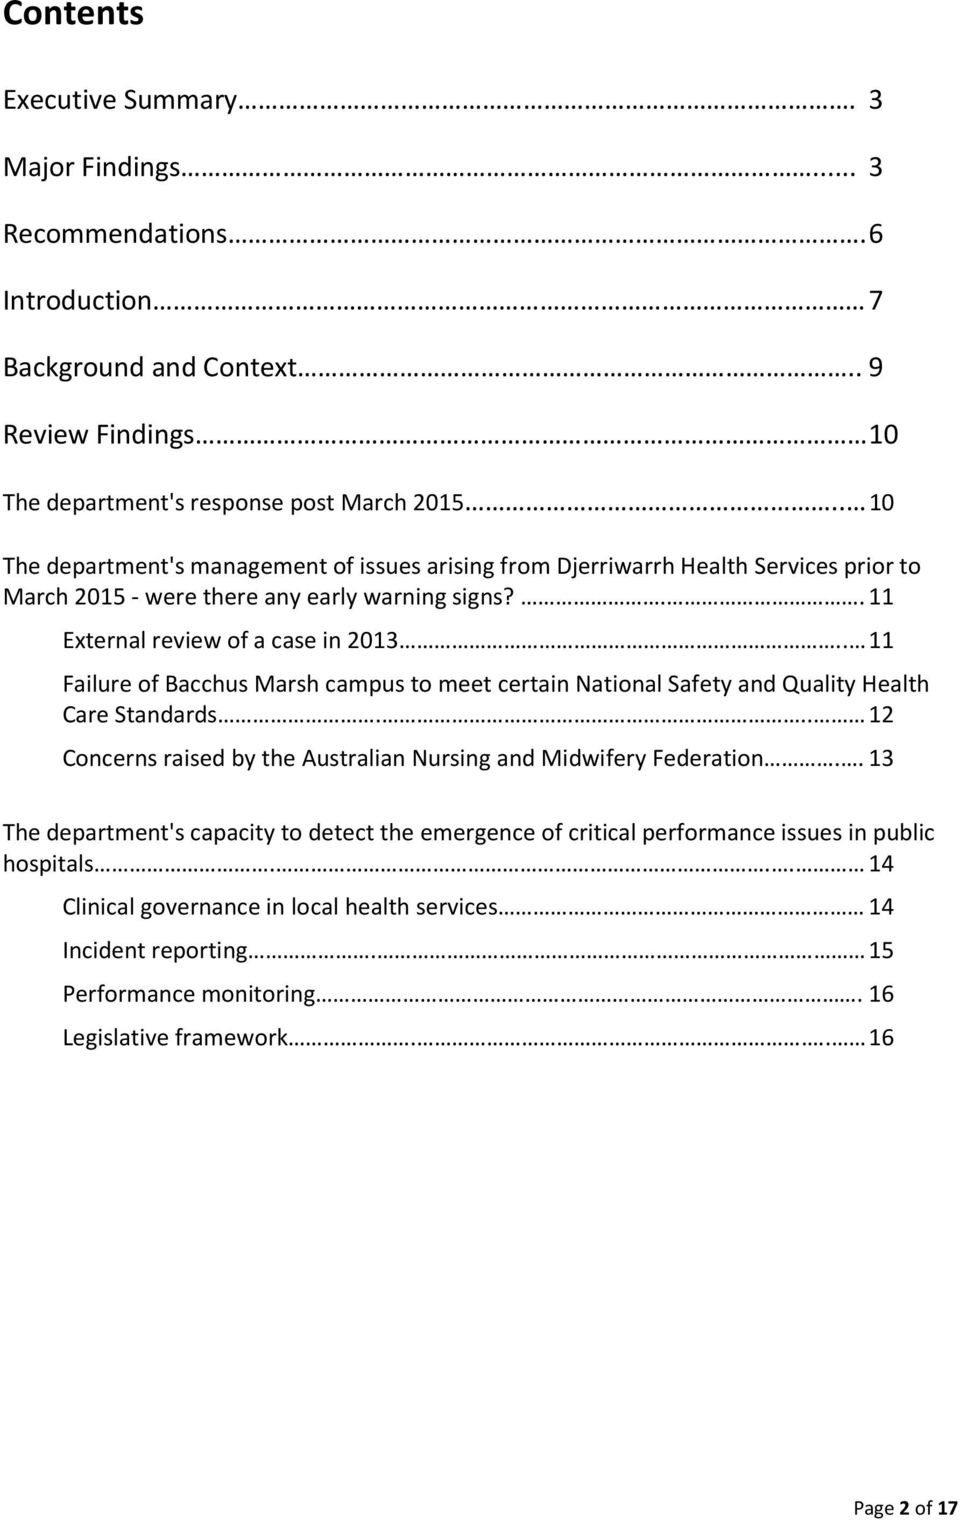 . 11 Failure of Bacchus Marsh campus to meet certain National Safety and Quality Health Care Standards... 12 Concerns raised by the Australian Nursing and Midwifery Federation.